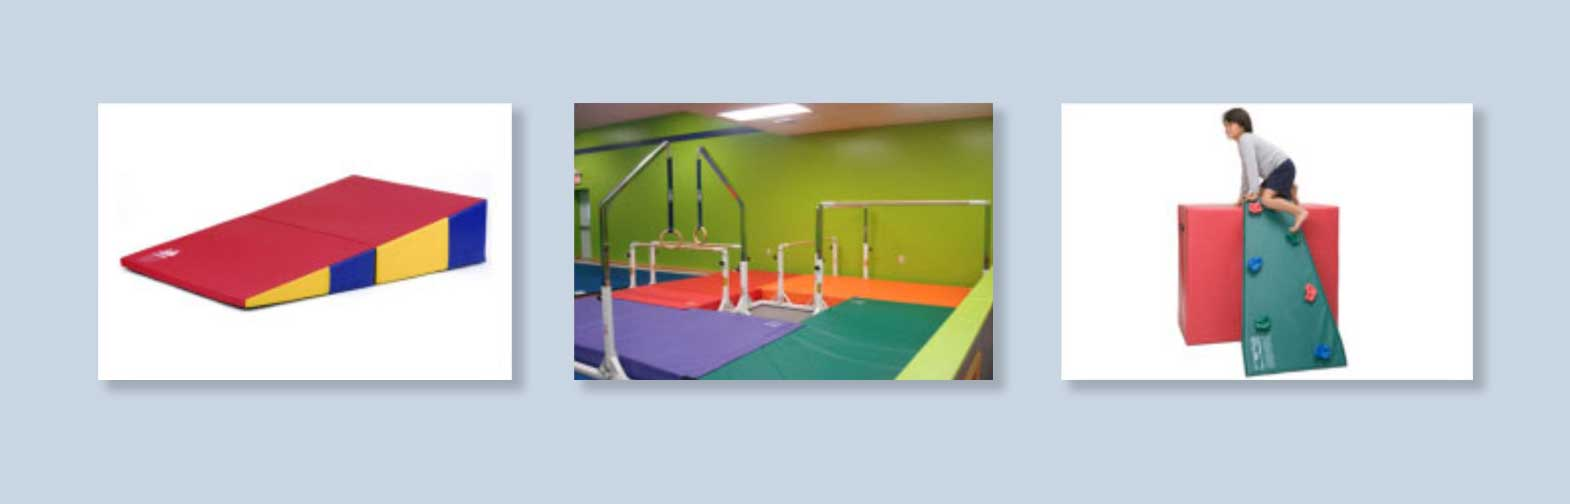 Kids, Fundamental, Kindergym. Preschool Gymnastics Equipment and Mats